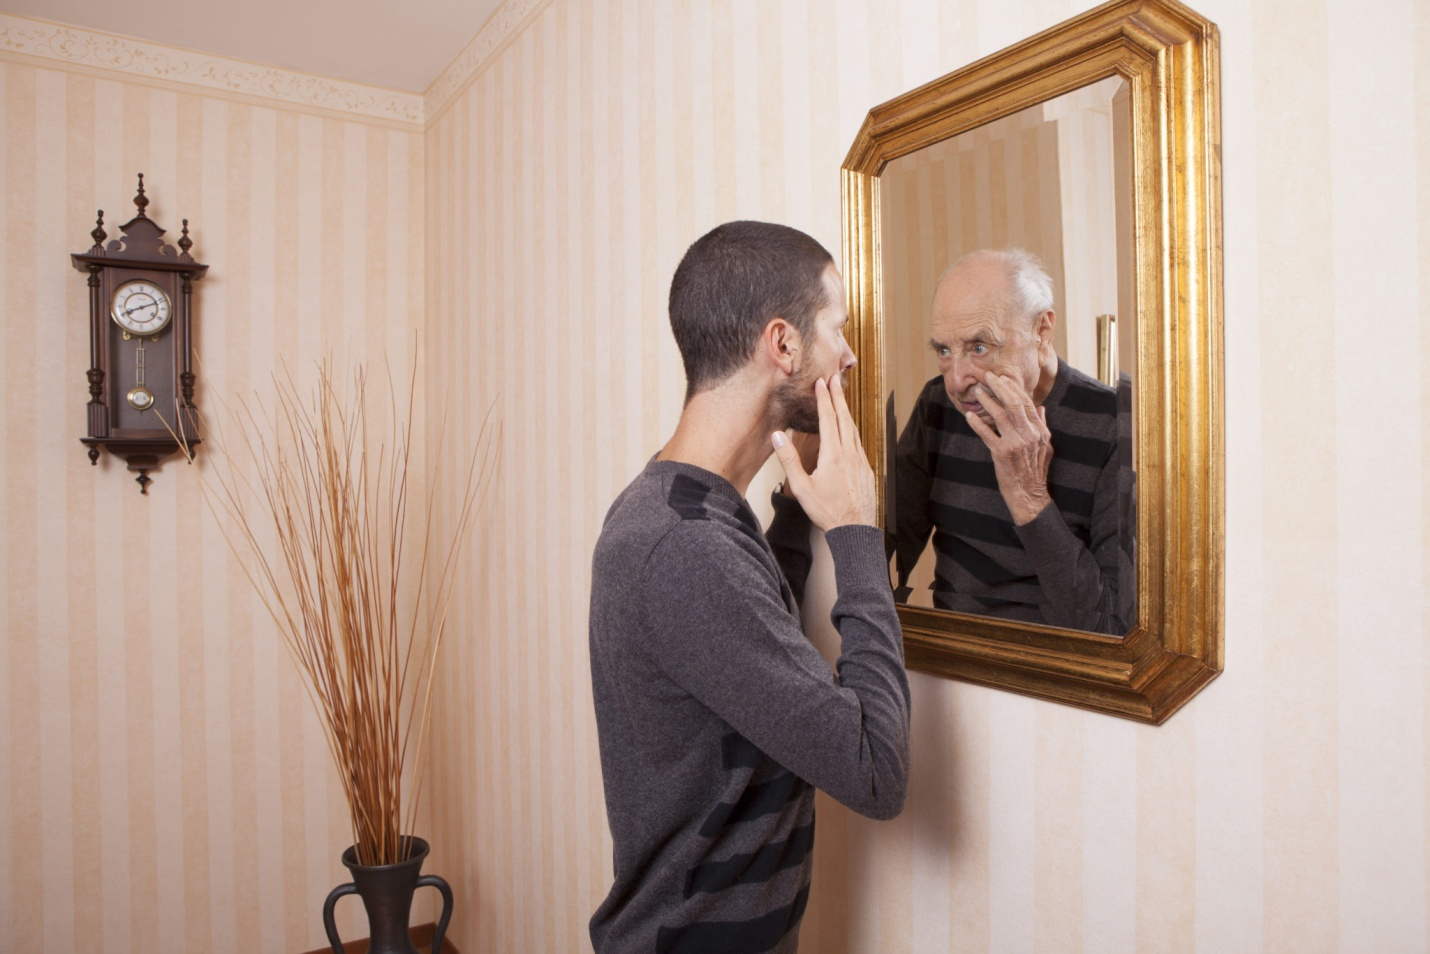 How do I stop comparing myself to others? mirror